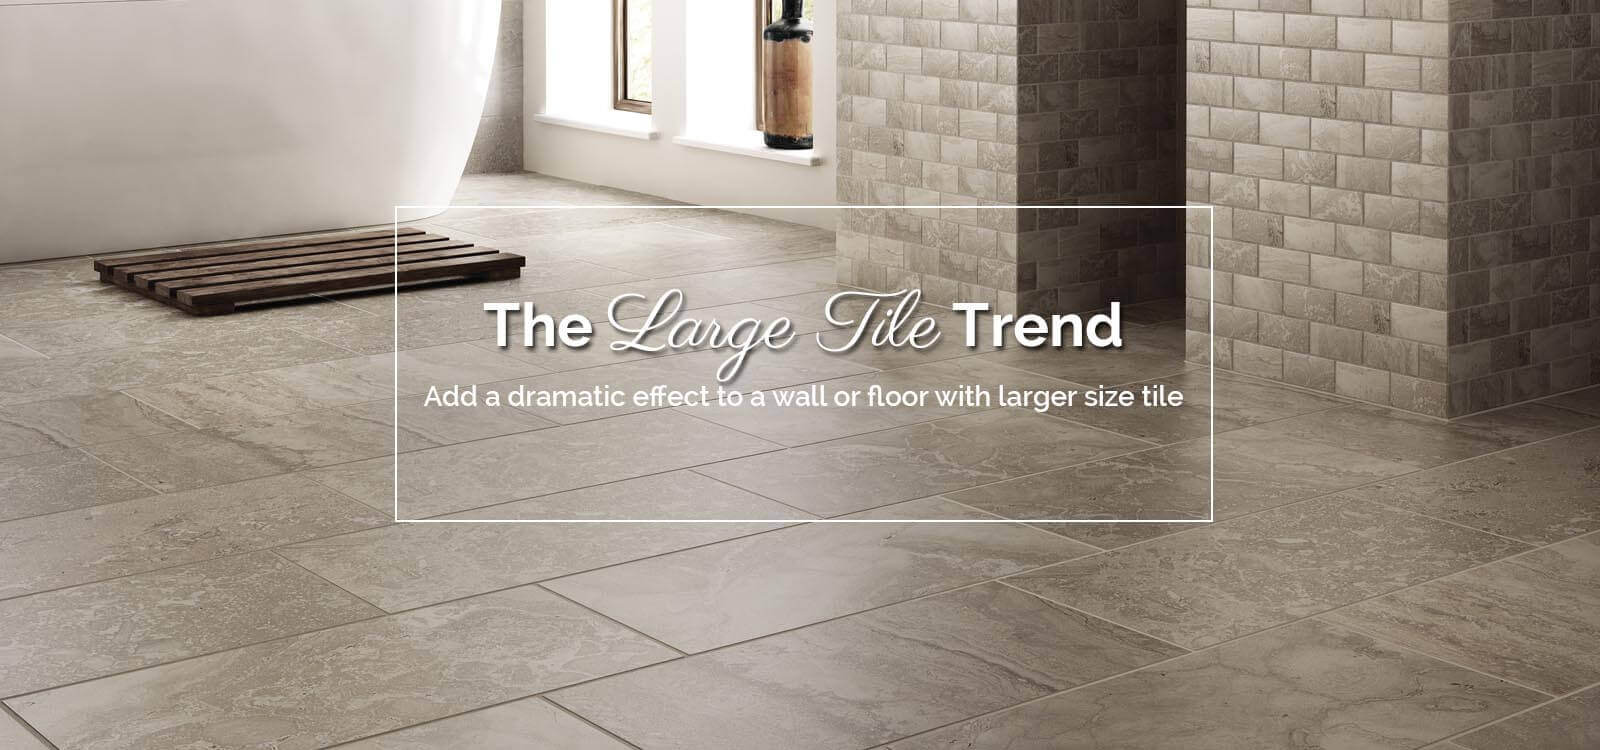 The Large Tile Trend